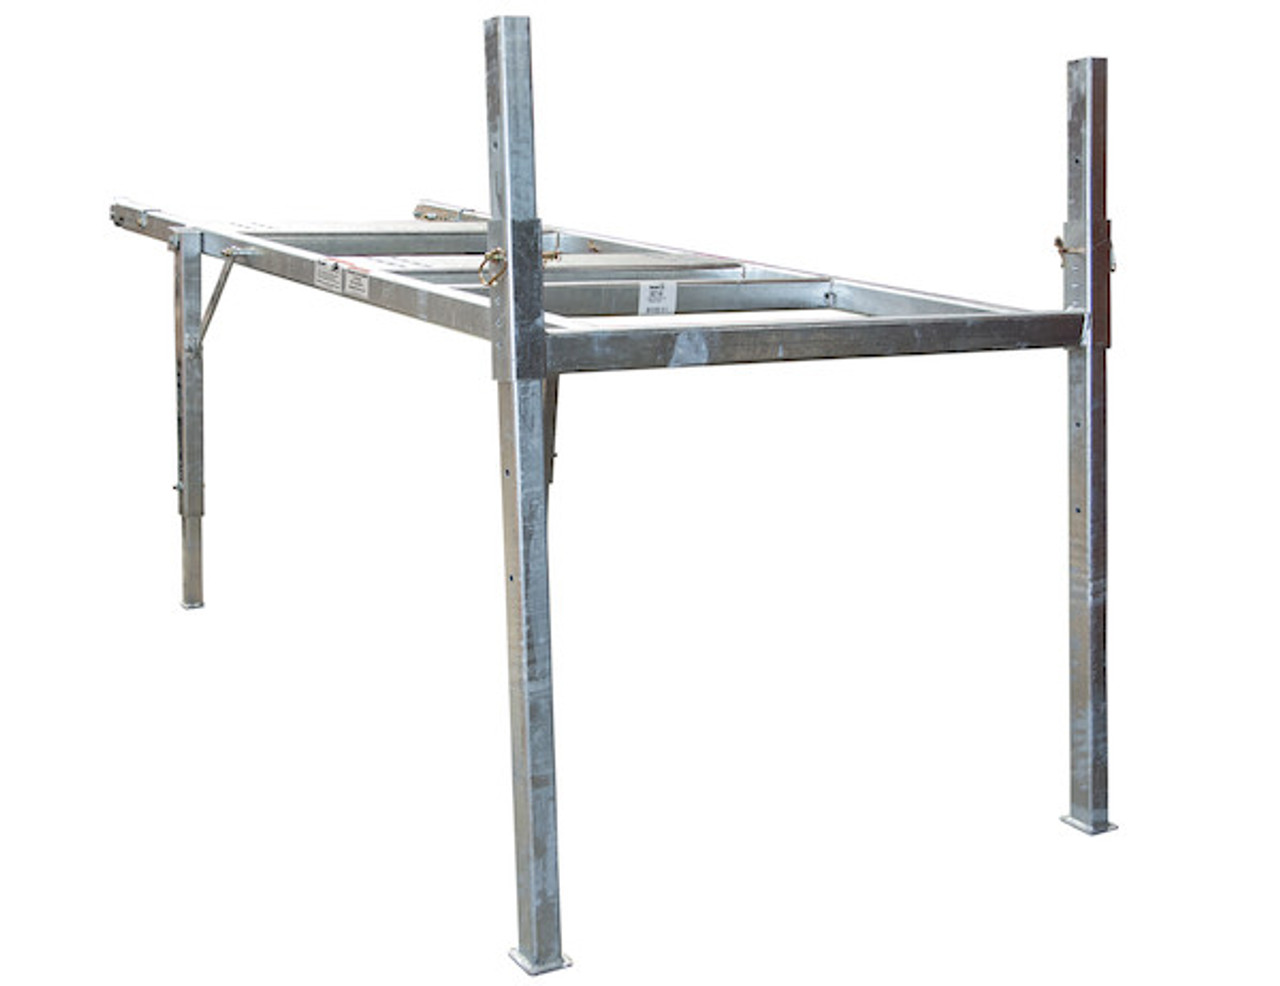 BUYERS 3037295 9-10 Foot Mid-Size Hot-Dipped Galvanized Spreader Stand for SaltDogg Spreader 3